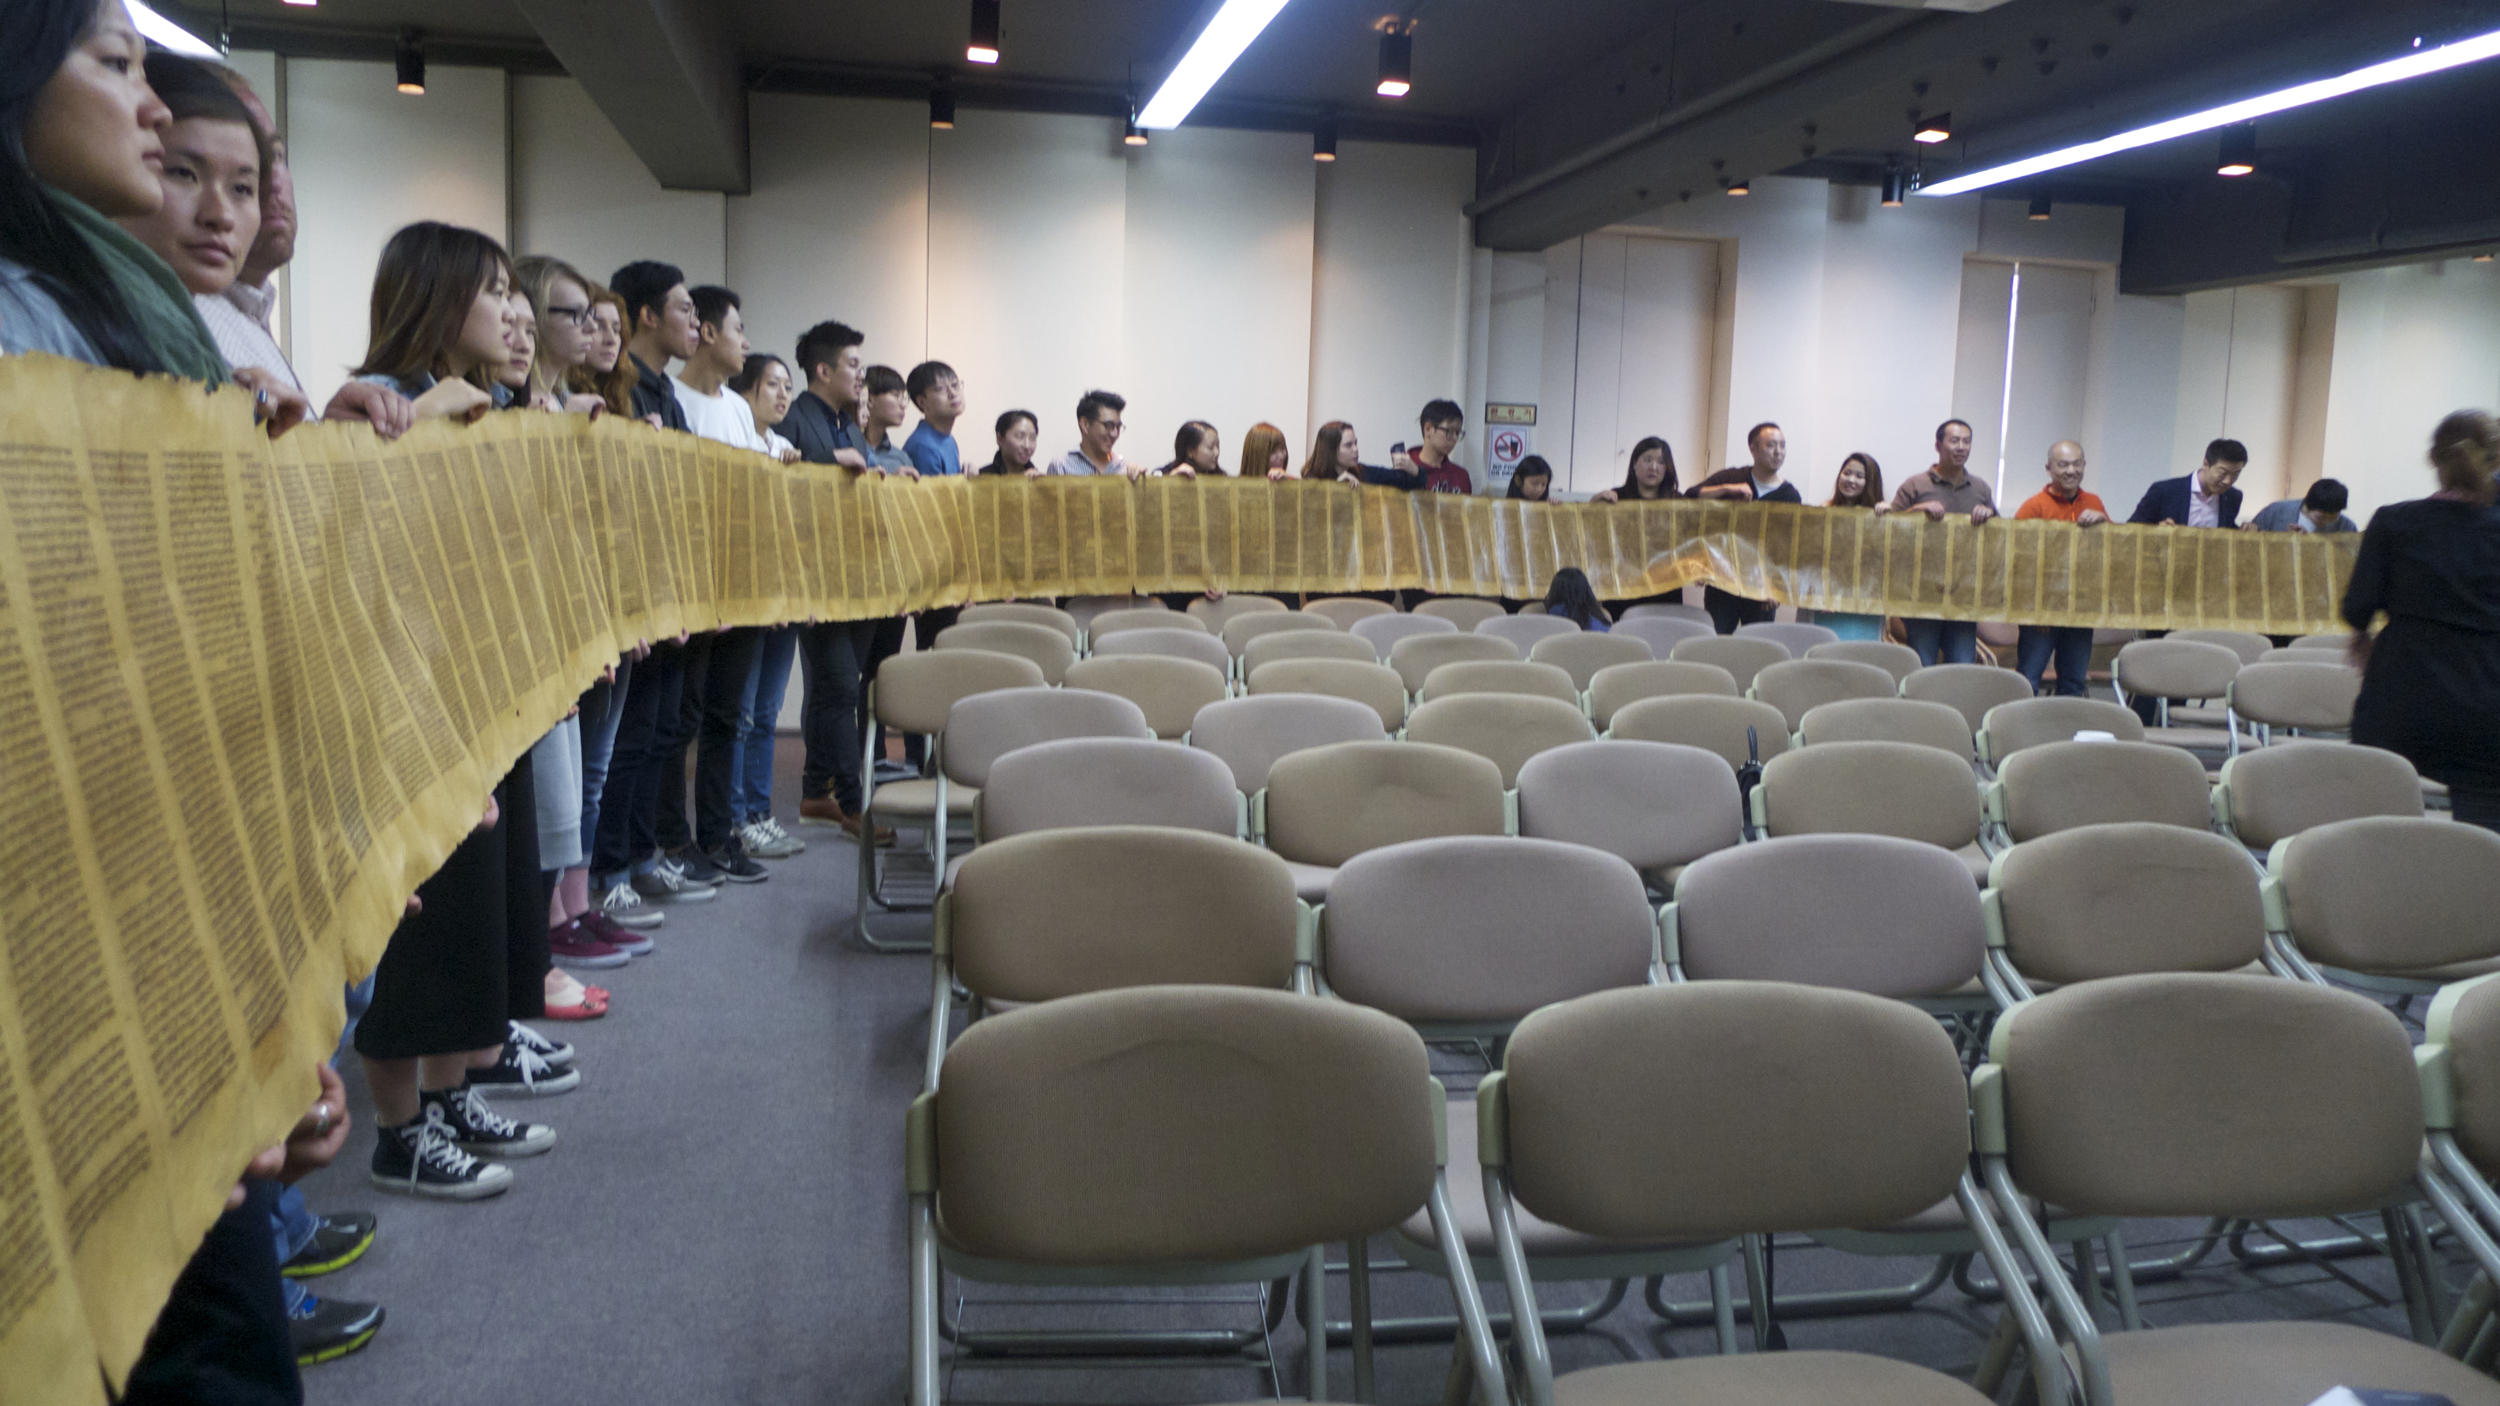 The audience participated in holding the entirety of the Torah scroll